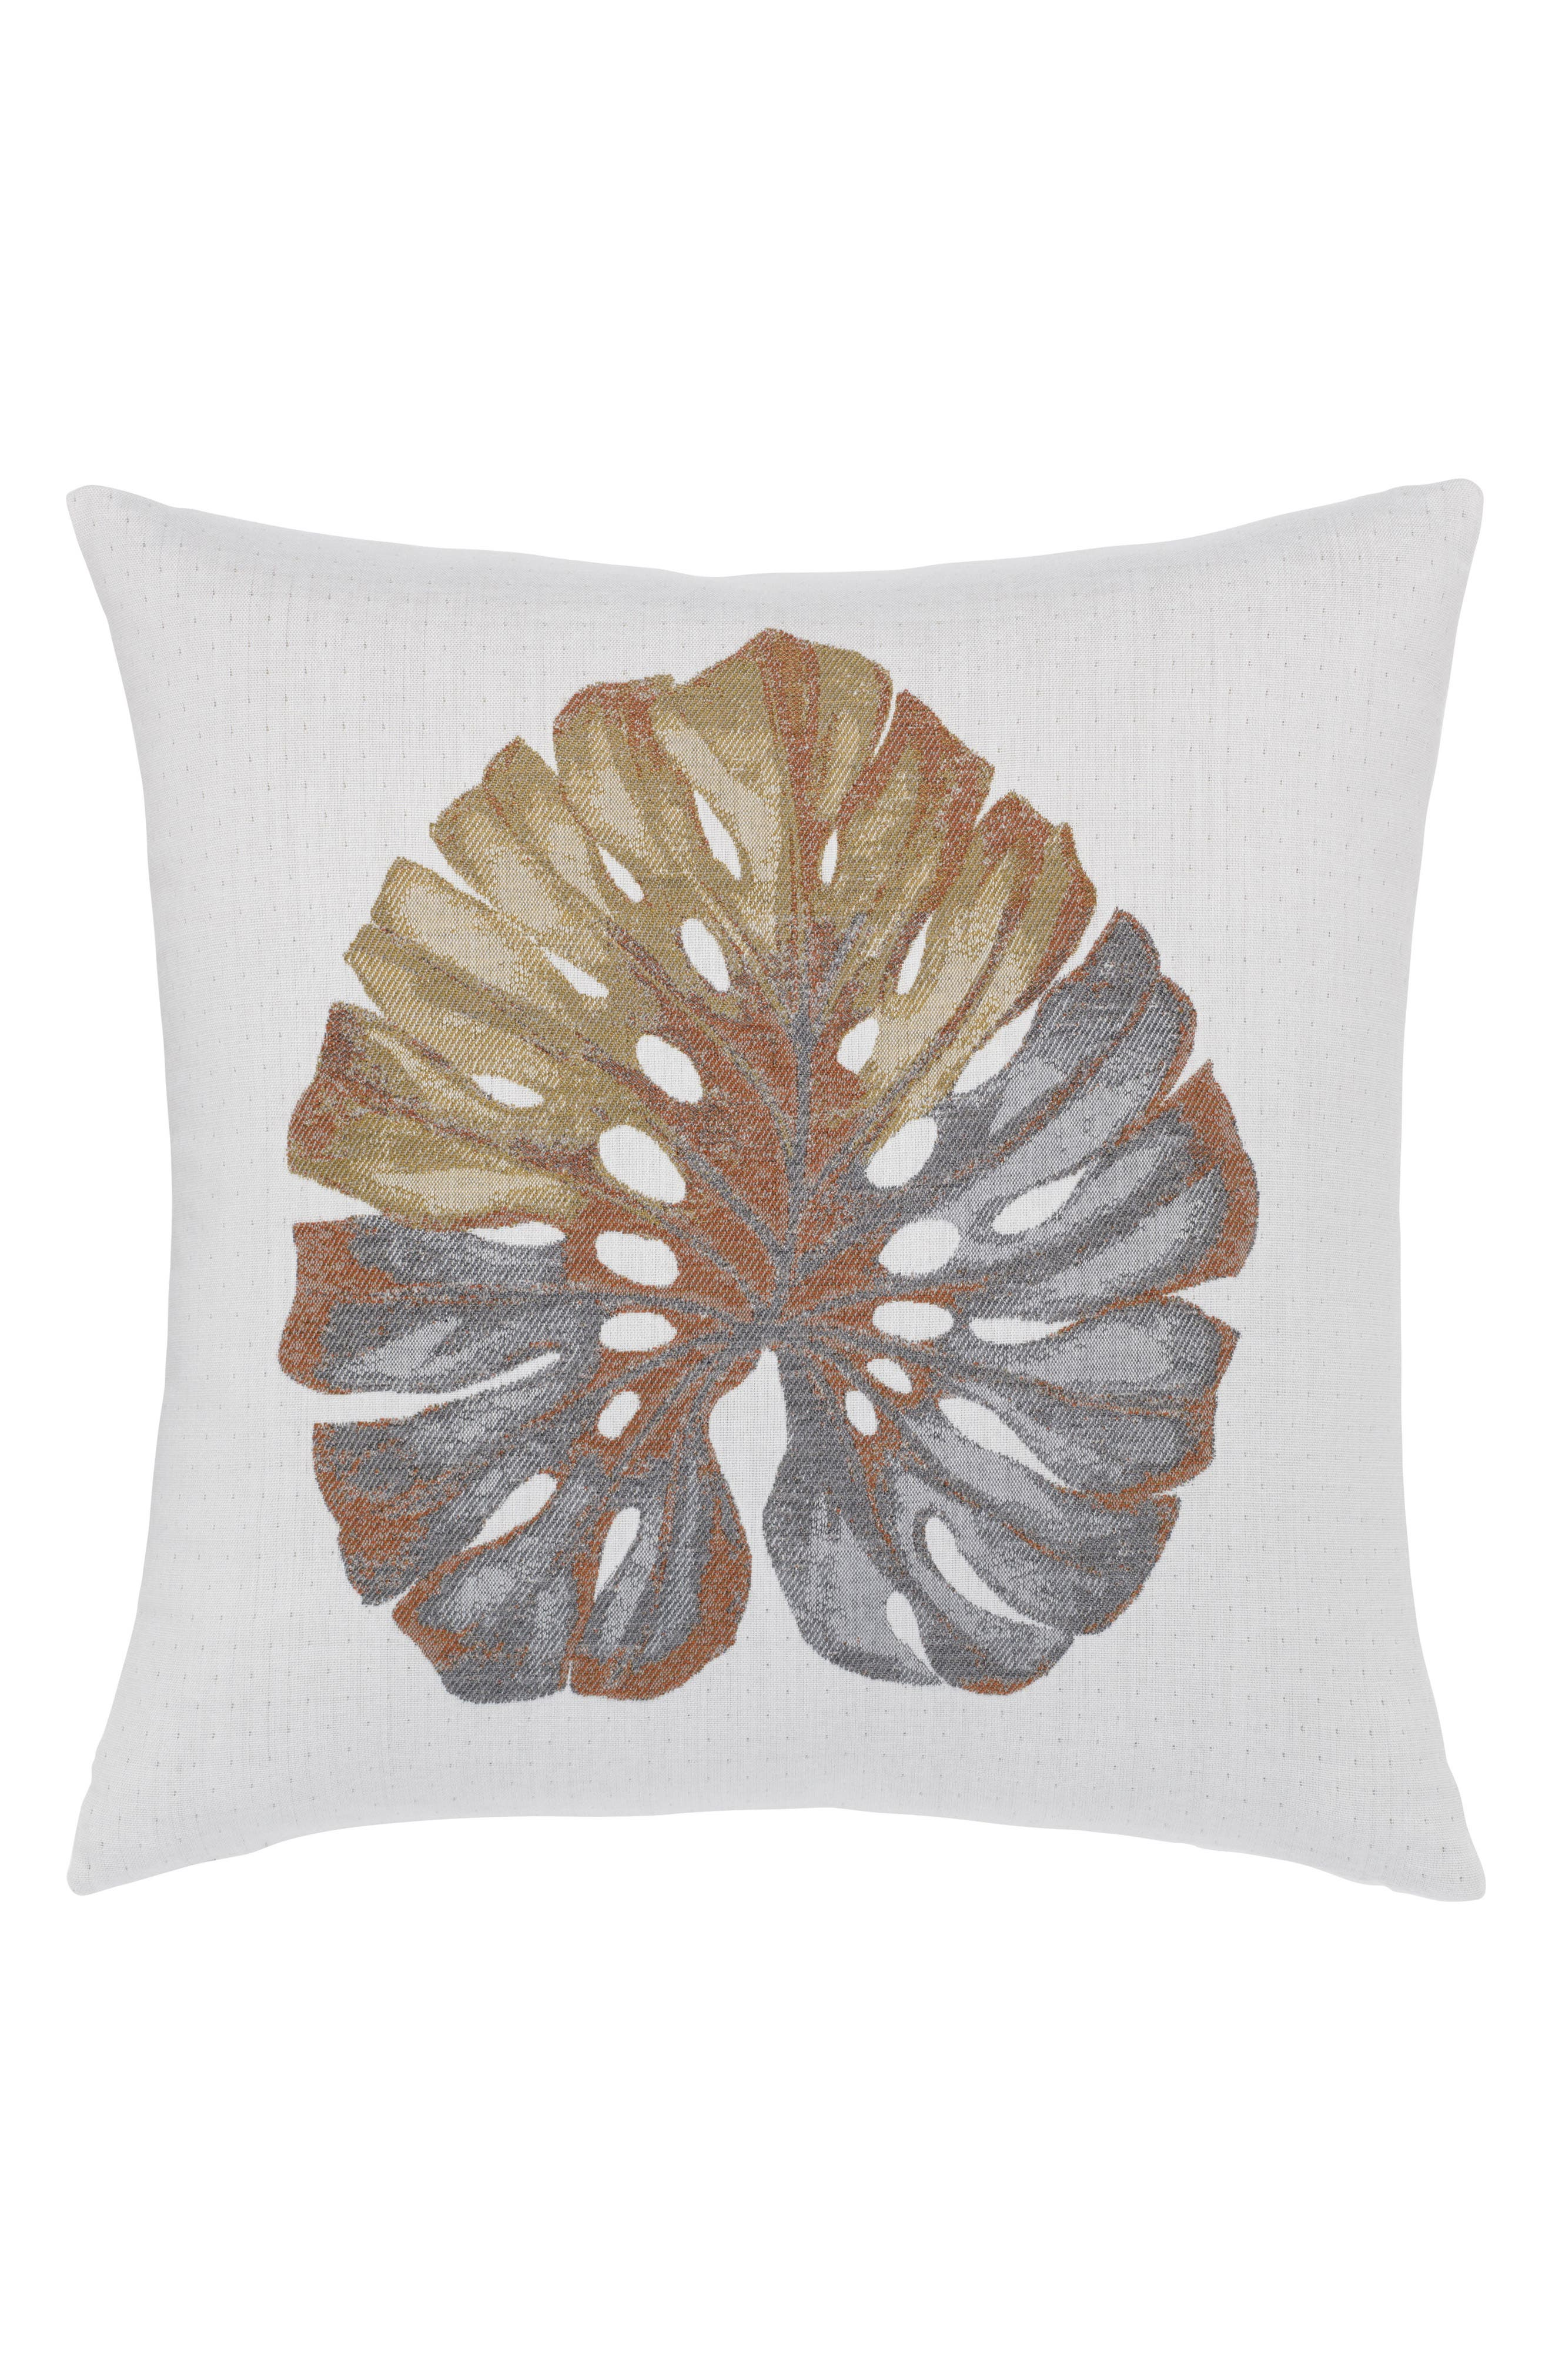 Metallic Leaf Indoor/Outdoor Accent Pillow,                         Main,                         color, GOLD/ GREY